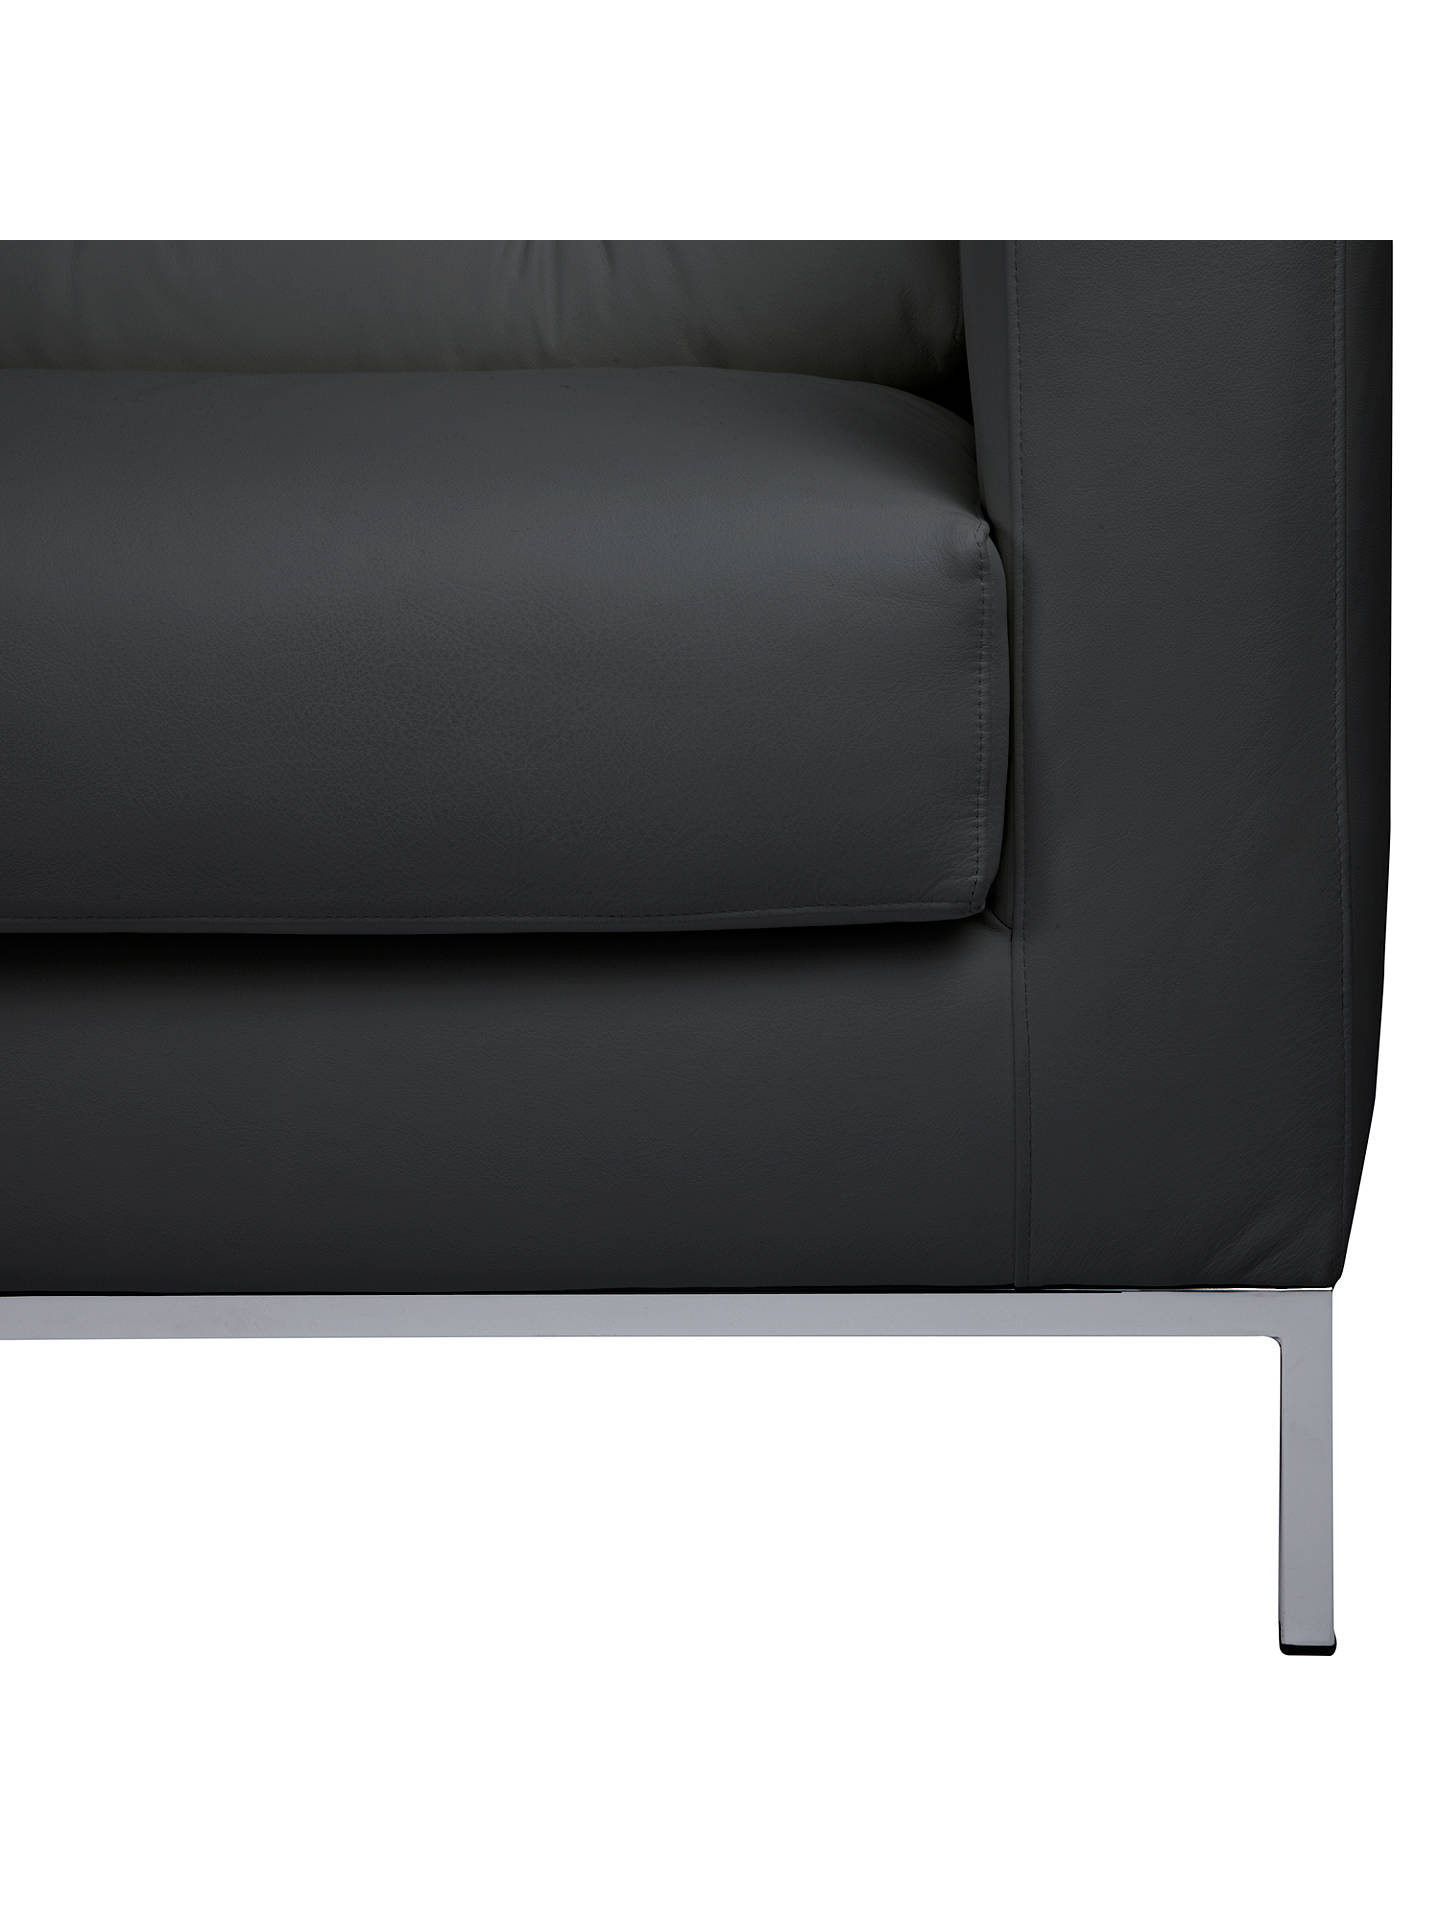 Buy John Lewis Odyssey Large Leather Sofa, Arredo Black Online at johnlewis.com